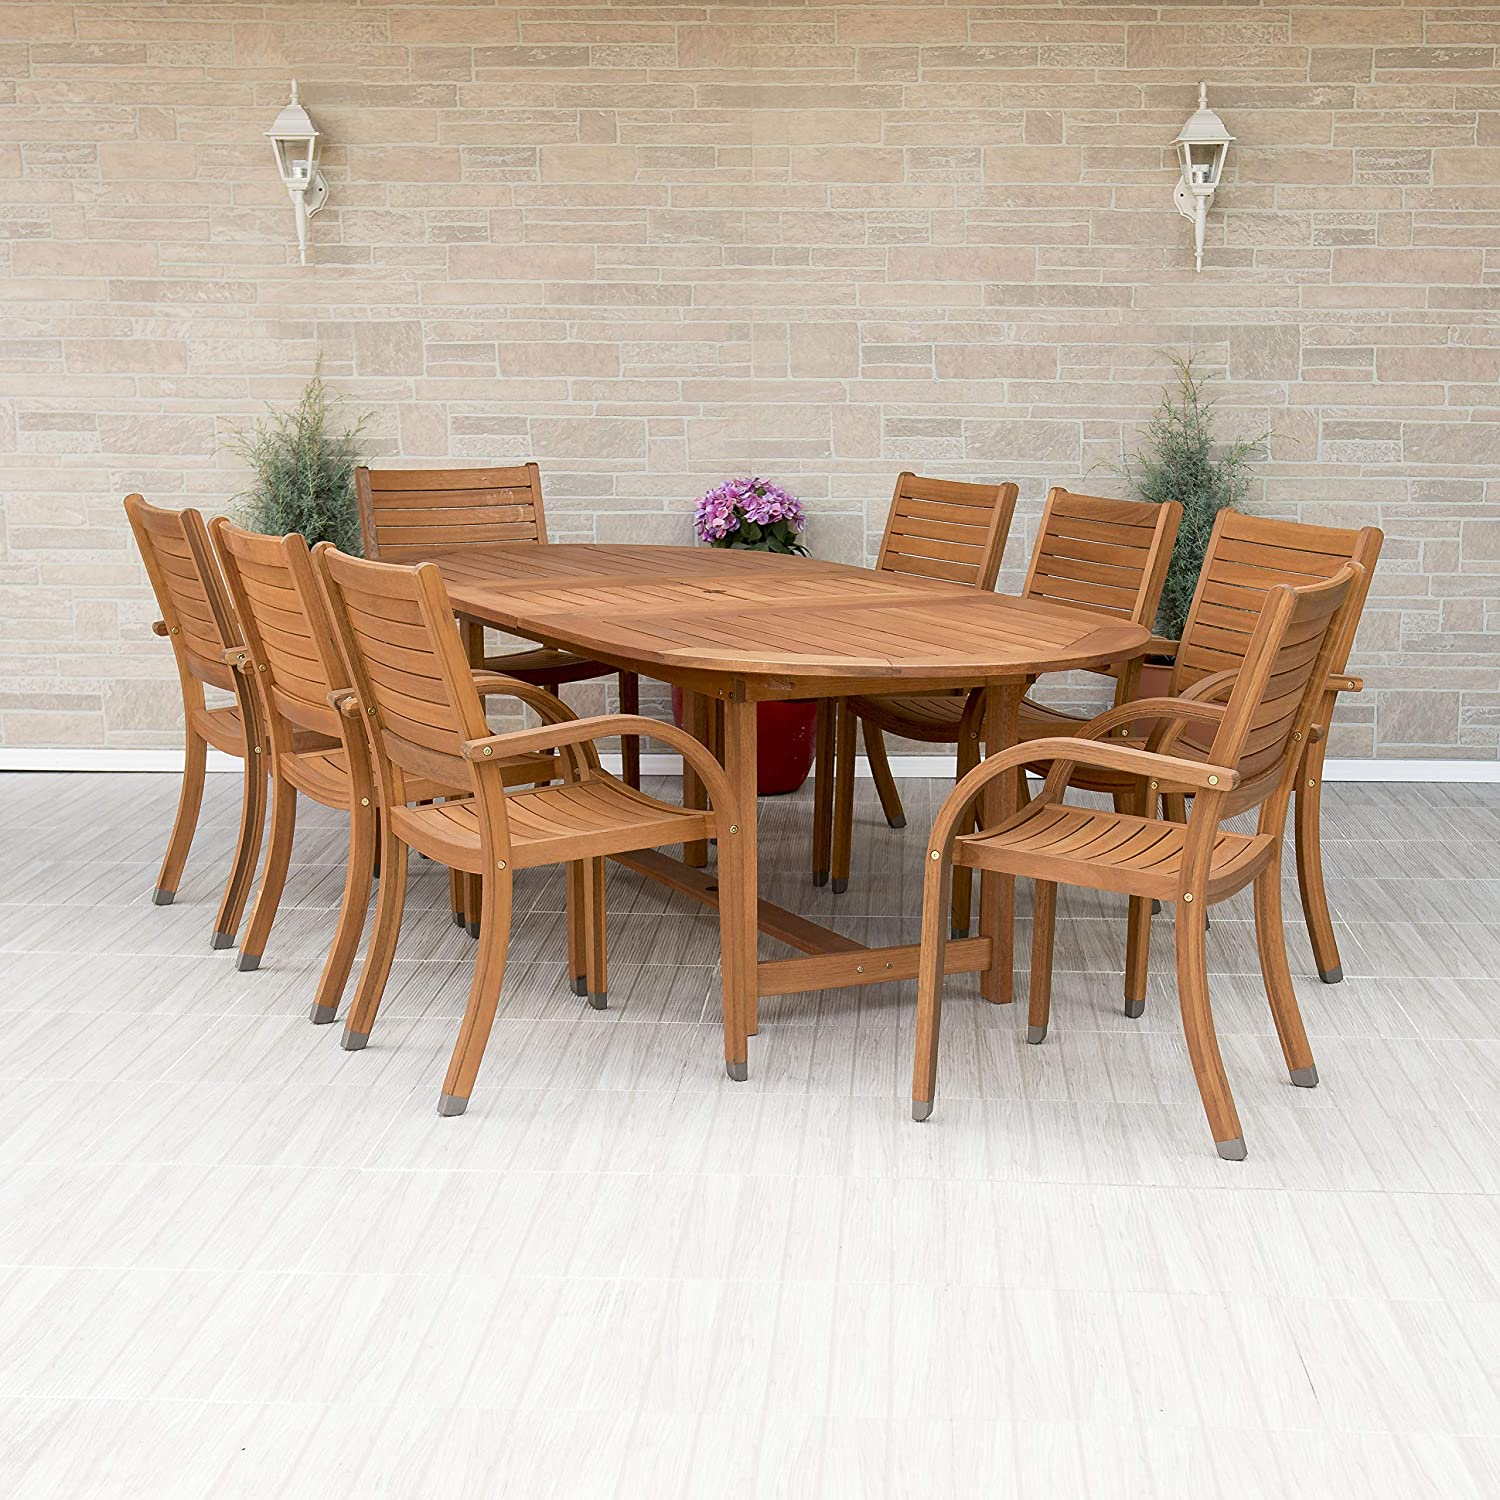 Amazon com amazonia arizona 9 piece oval outdoor dining set eucalyptus wood durable and ideal for patio and backyard light brown garden outdoor